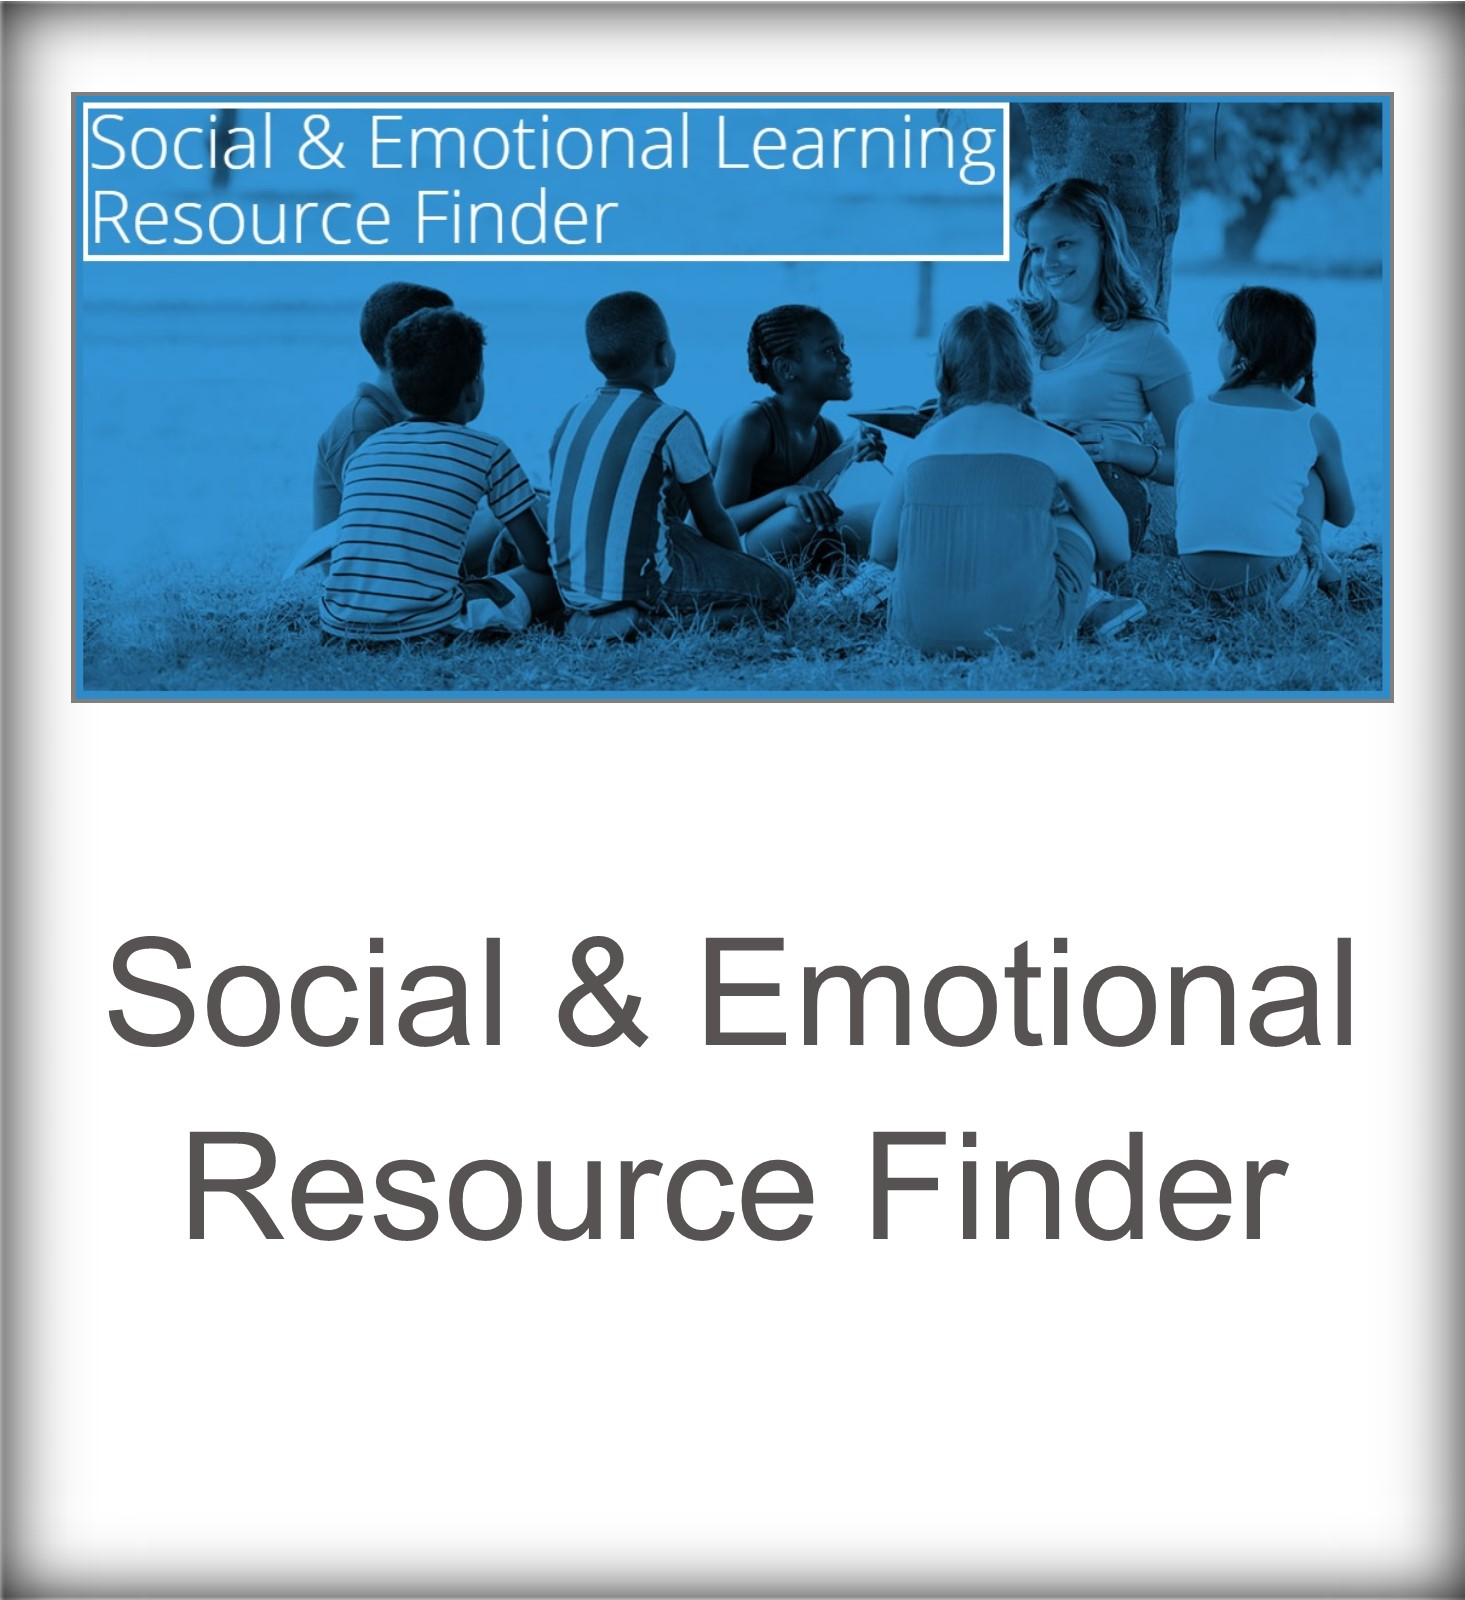 Social & Emotional Learning Resource Finder